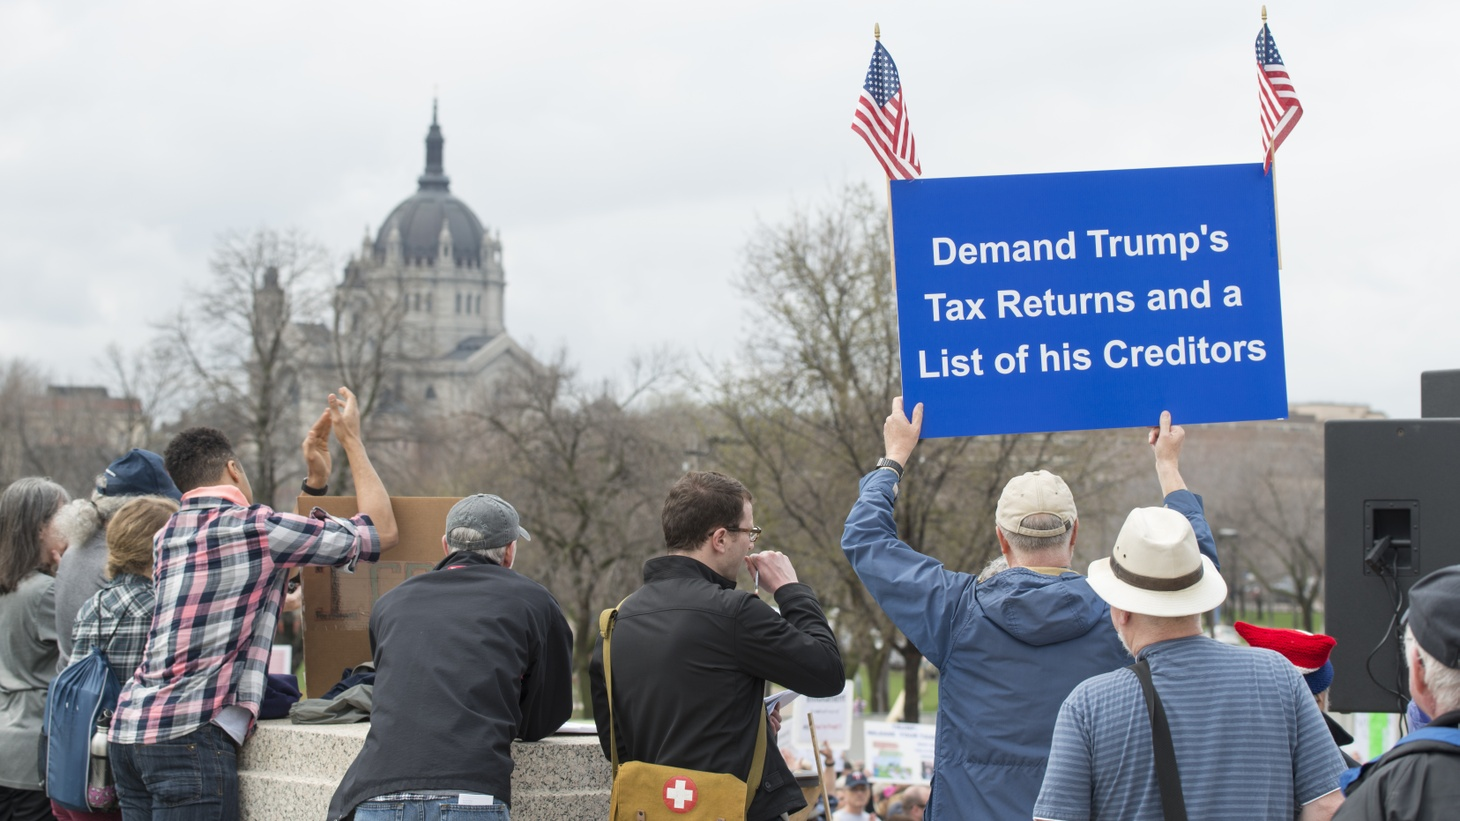 People at the Minnesota capitol grounds called on Donald Trump to release his tax returns, divest his holdings, and disclose his conflicts of interest, April 15, 2017. On February 22, 2021, the Supreme Court rejected bids from Trump to keep his tax returns secret.